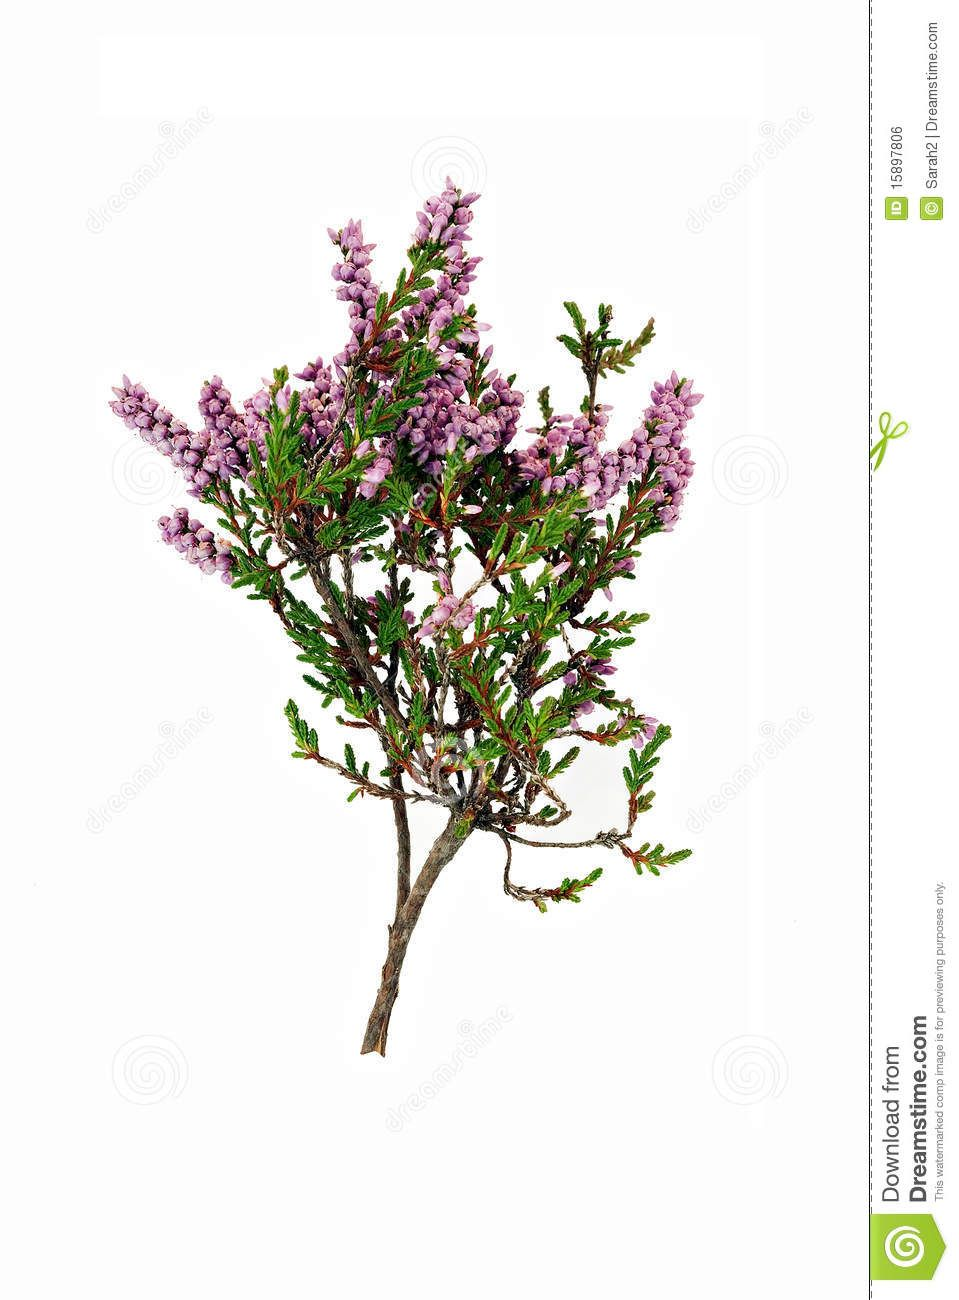 Sprig Purple Heather Isolated 15897806 Jpg 959 1300 Plants Flower Decorations Plant Drawing